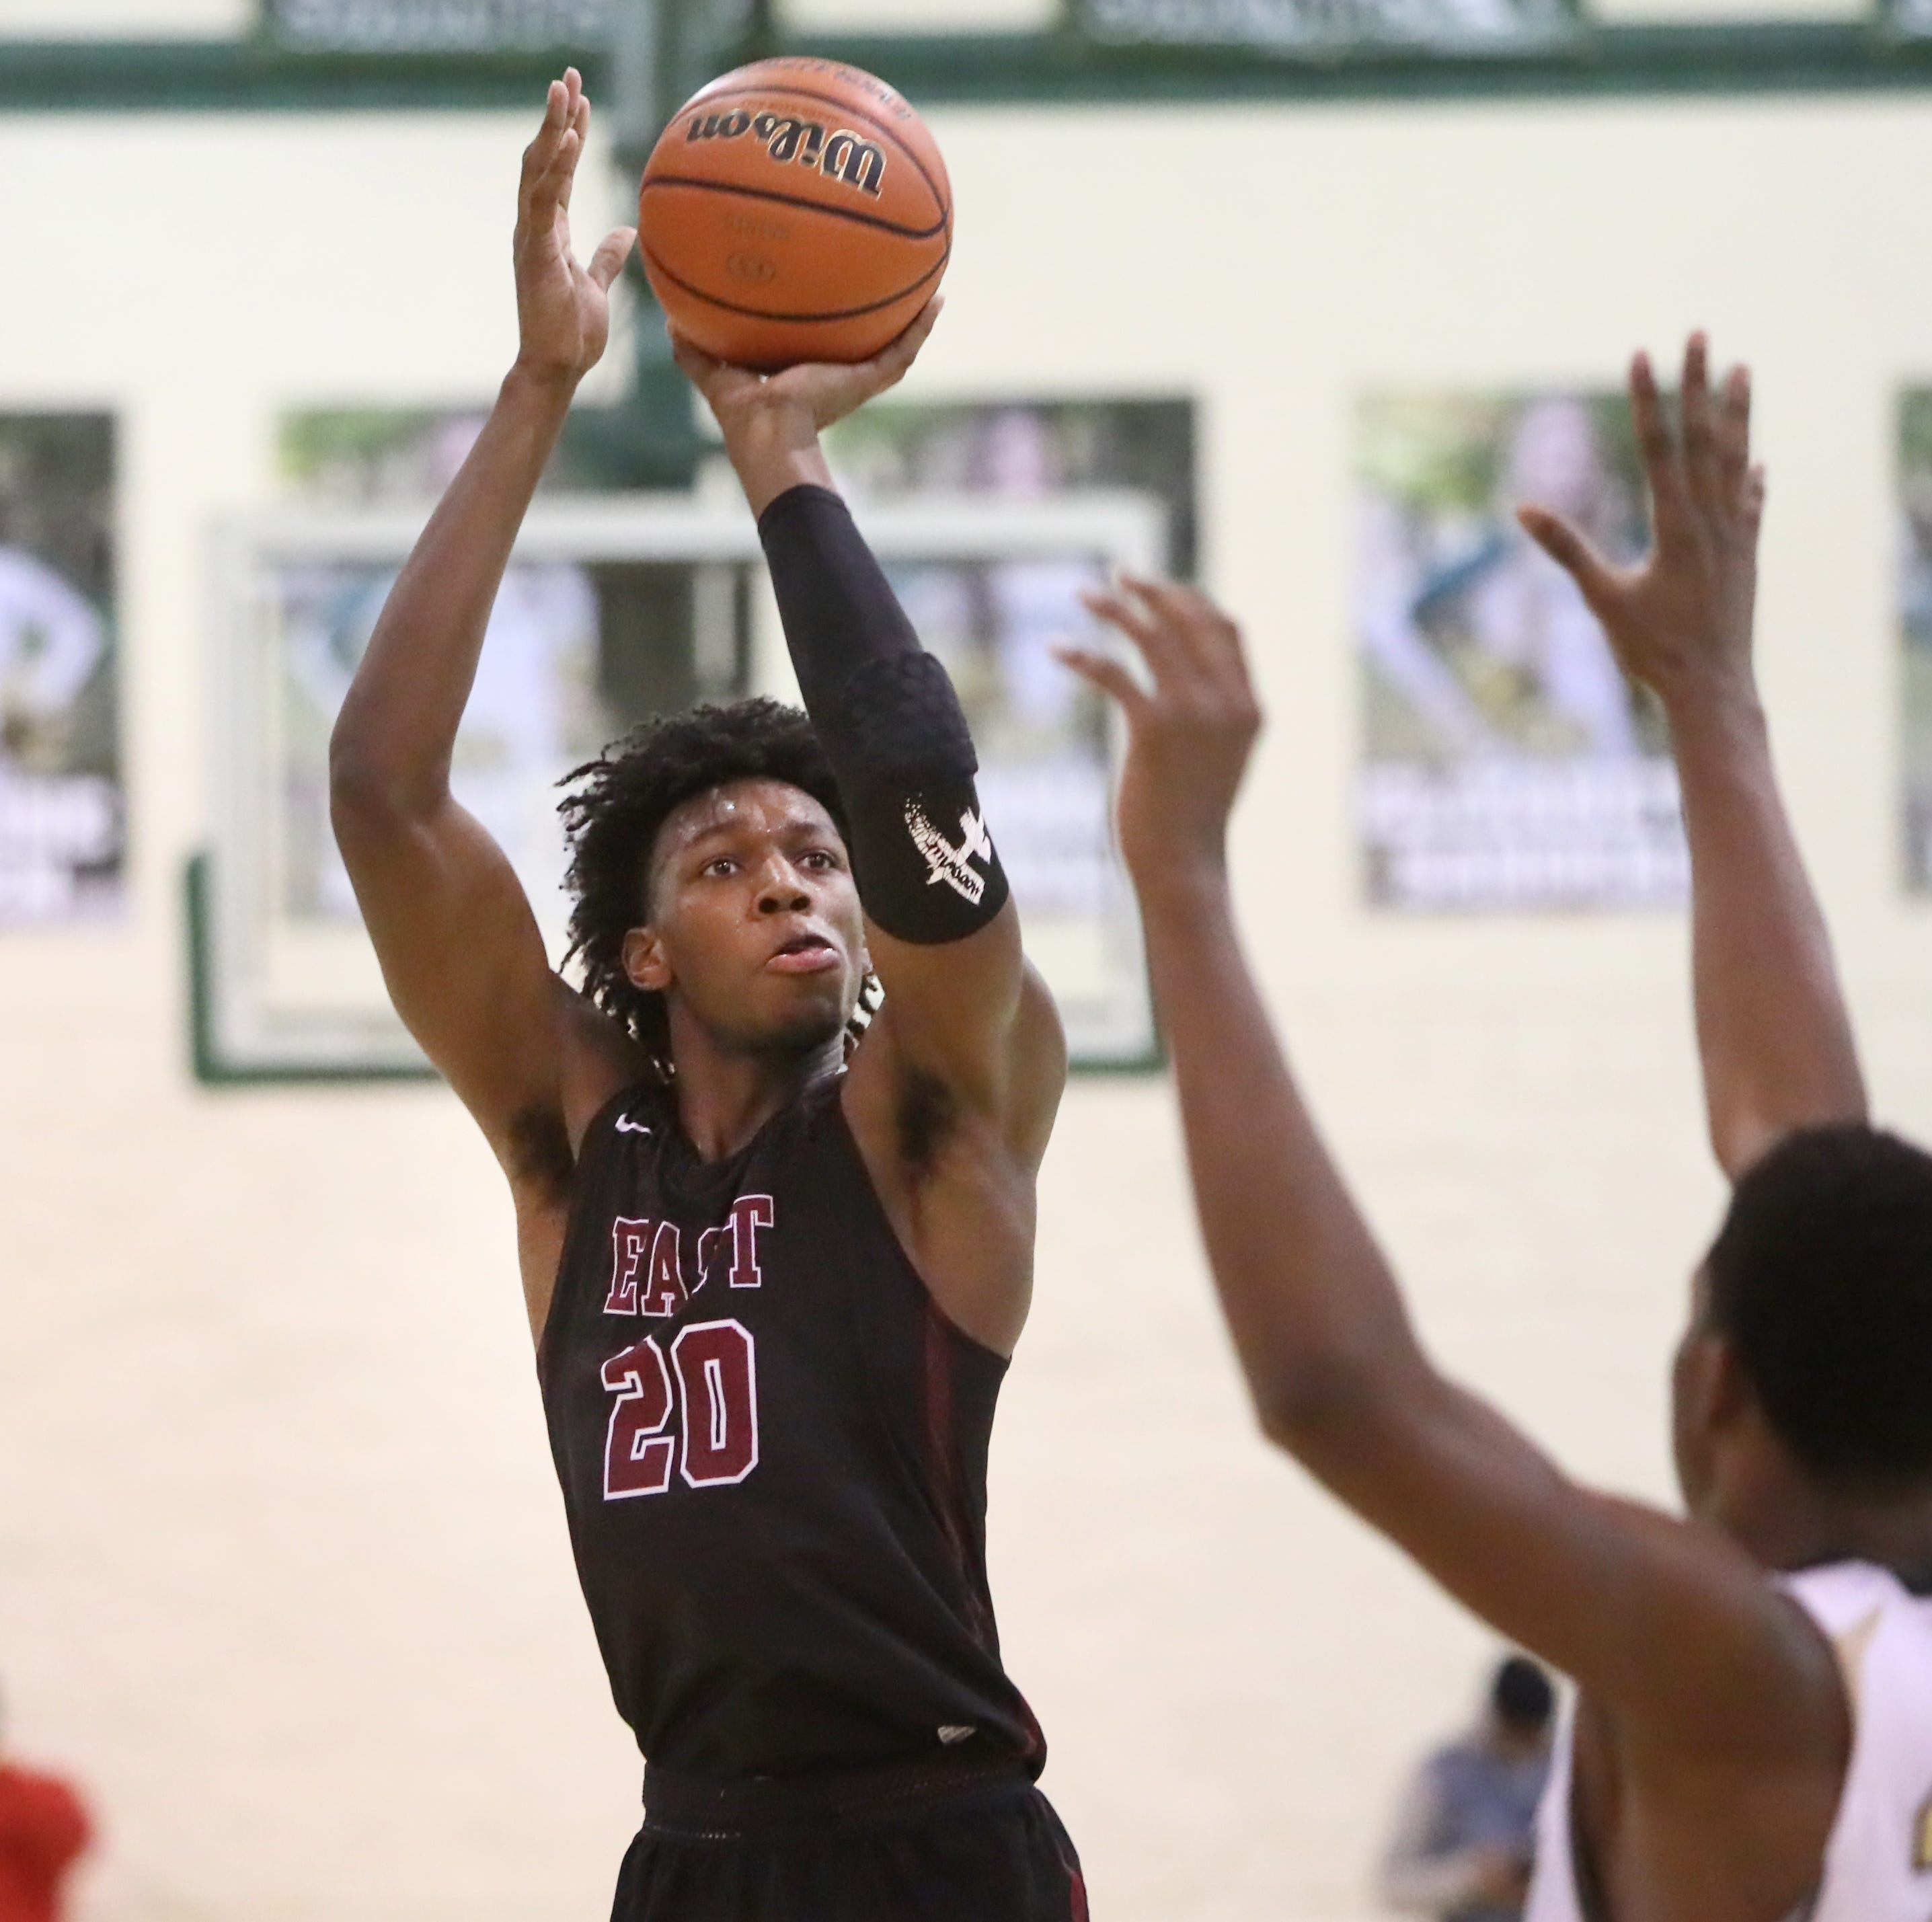 Memphis basketball: James Wiseman selected for NIKE Hoop Summit Game